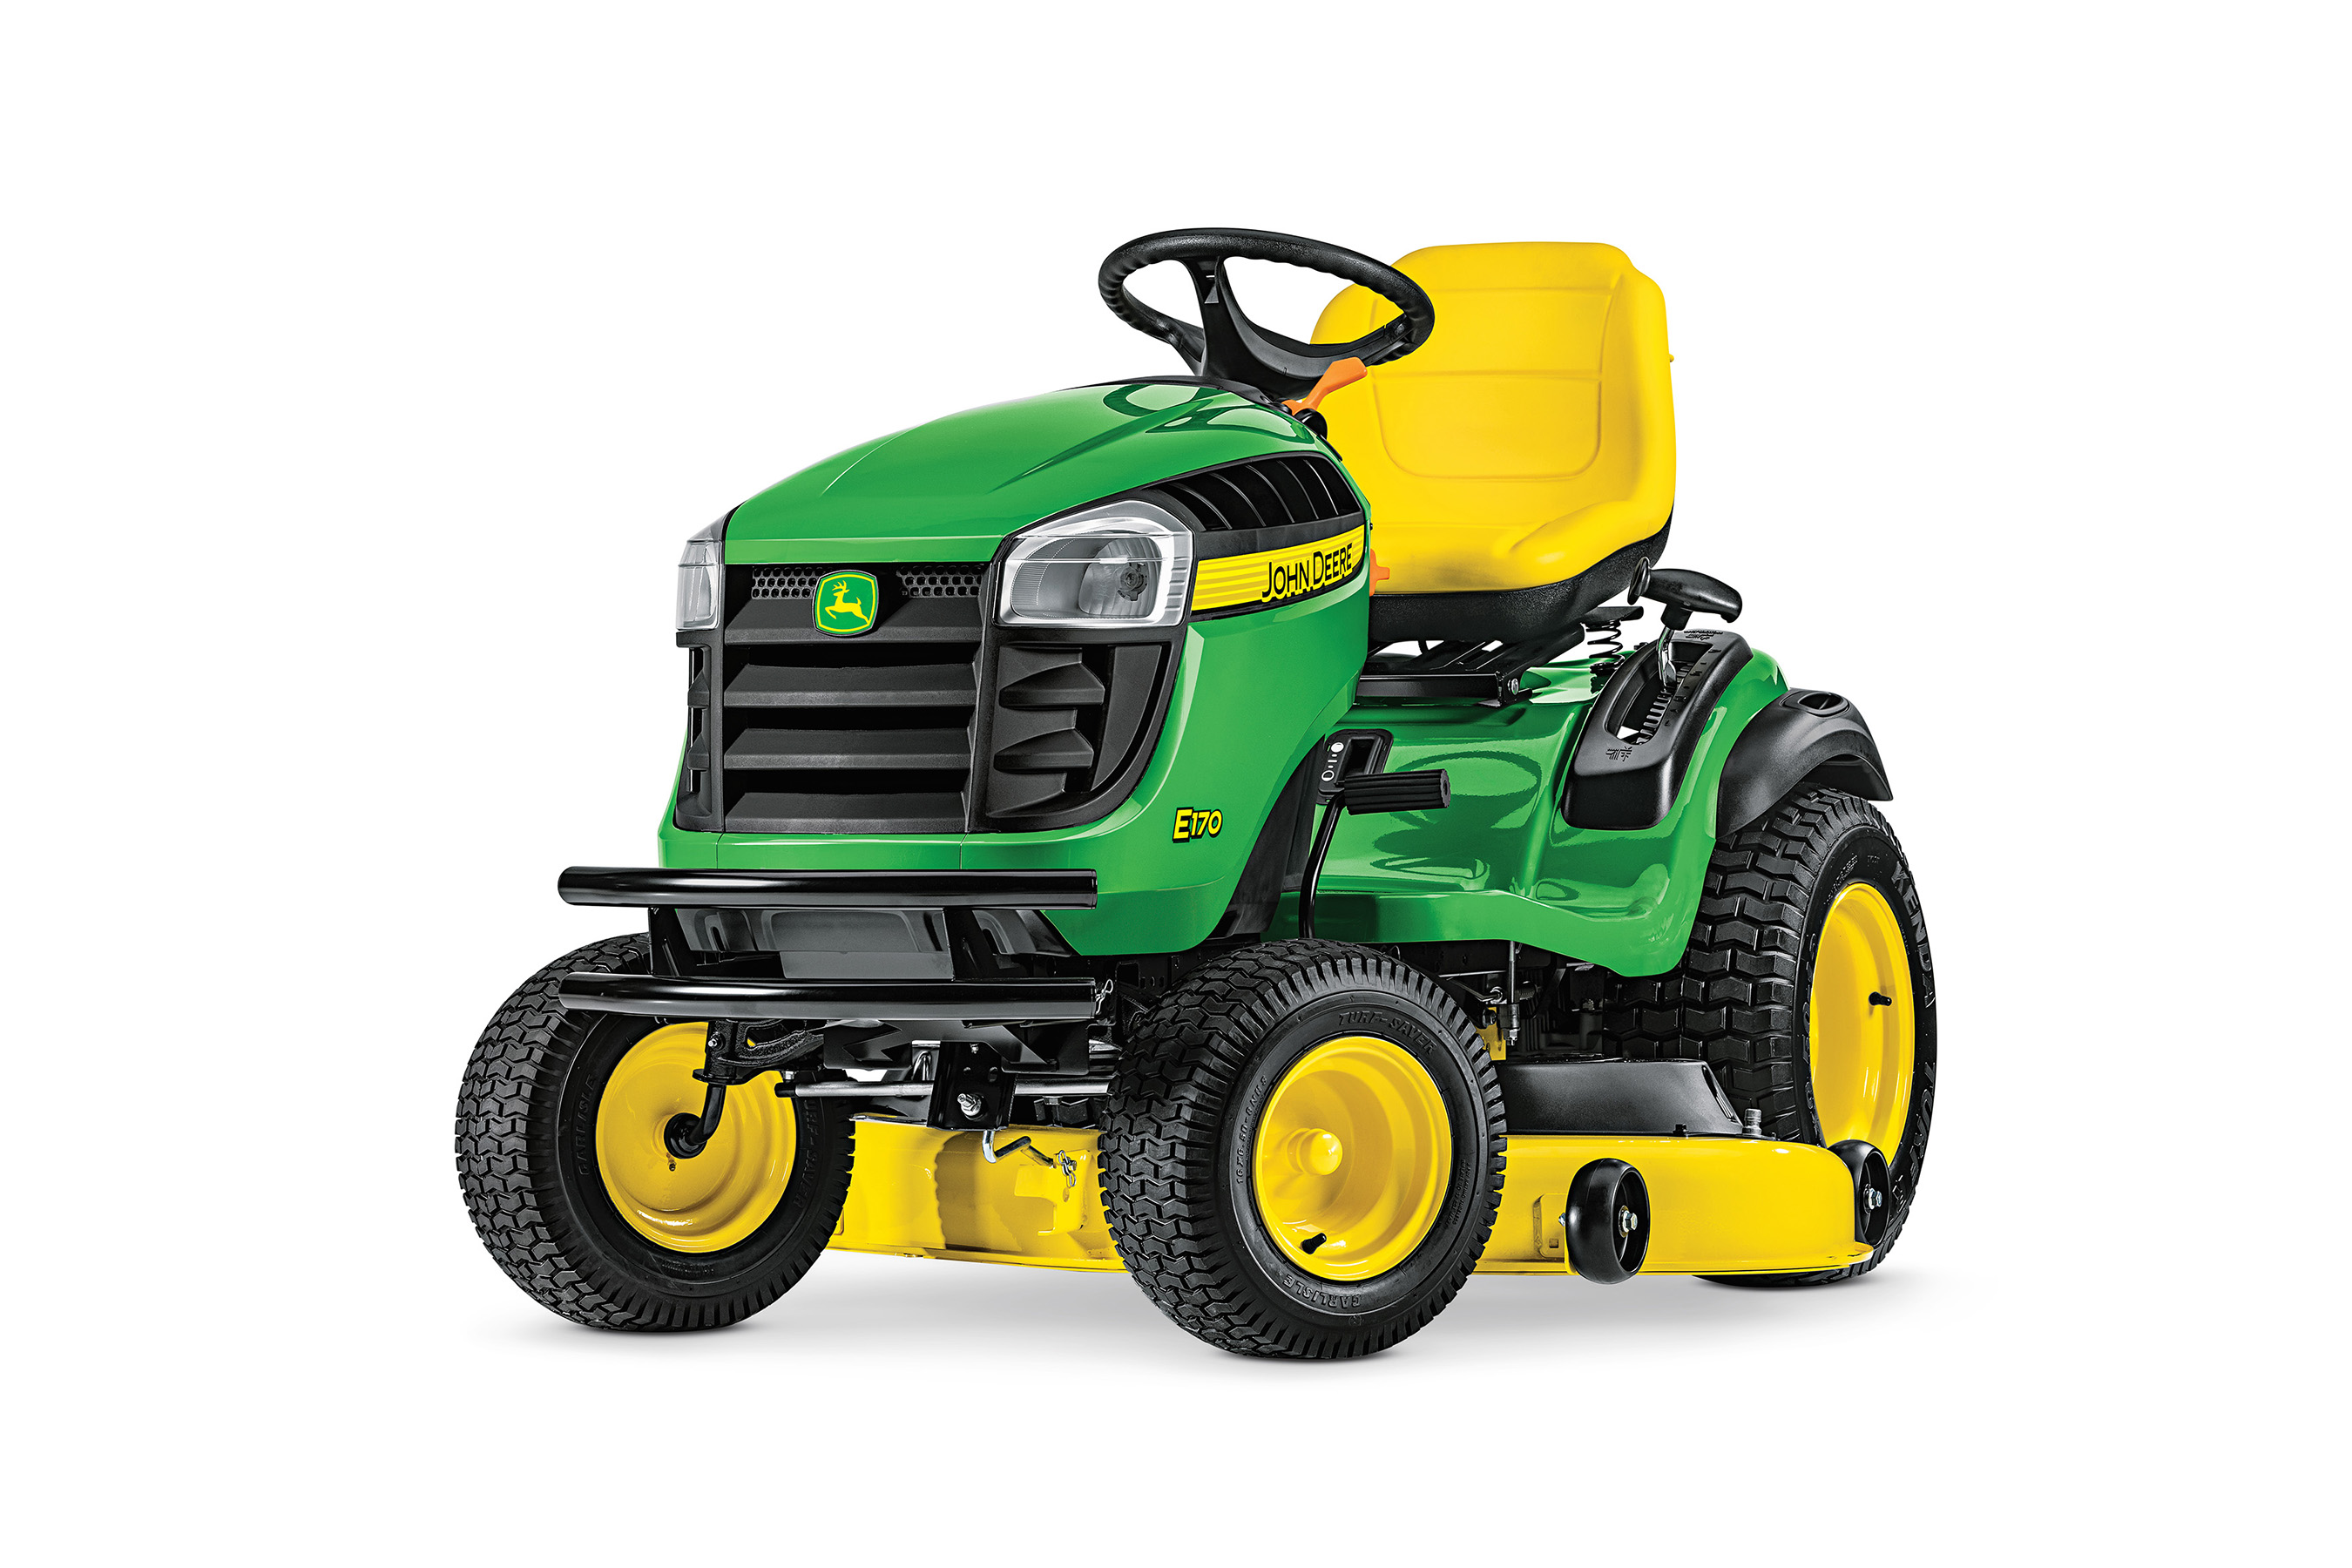 John Deere 100 Series >> John Deere Provides Comfort And Ease Of Use With New Lawn Tractors